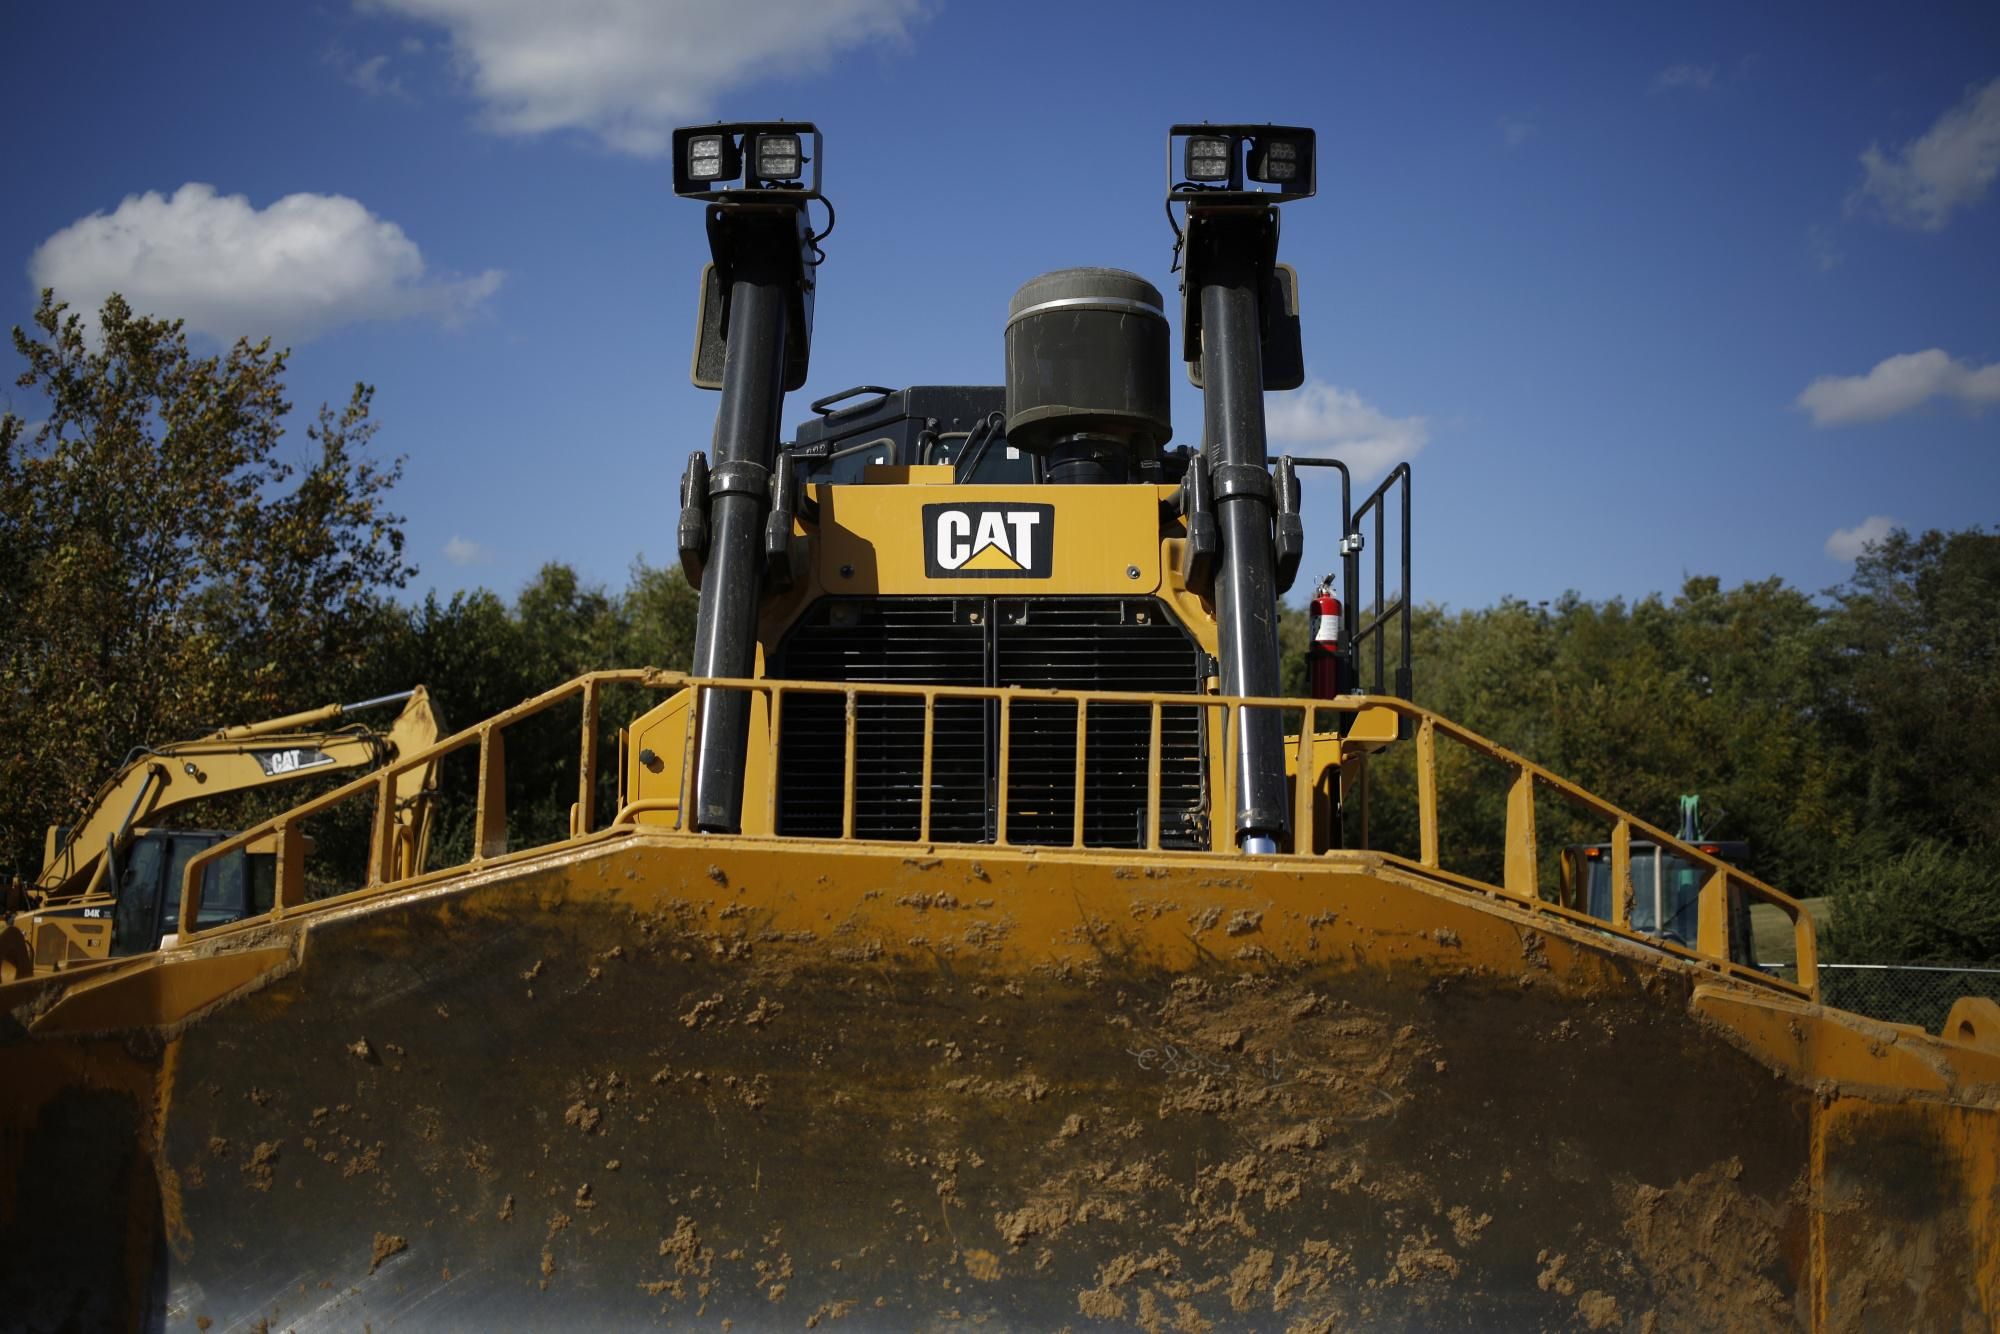 A Caterpillar Rental Bulldozer Sits At The Whayne Supply Co Dealership In Lexington Ky